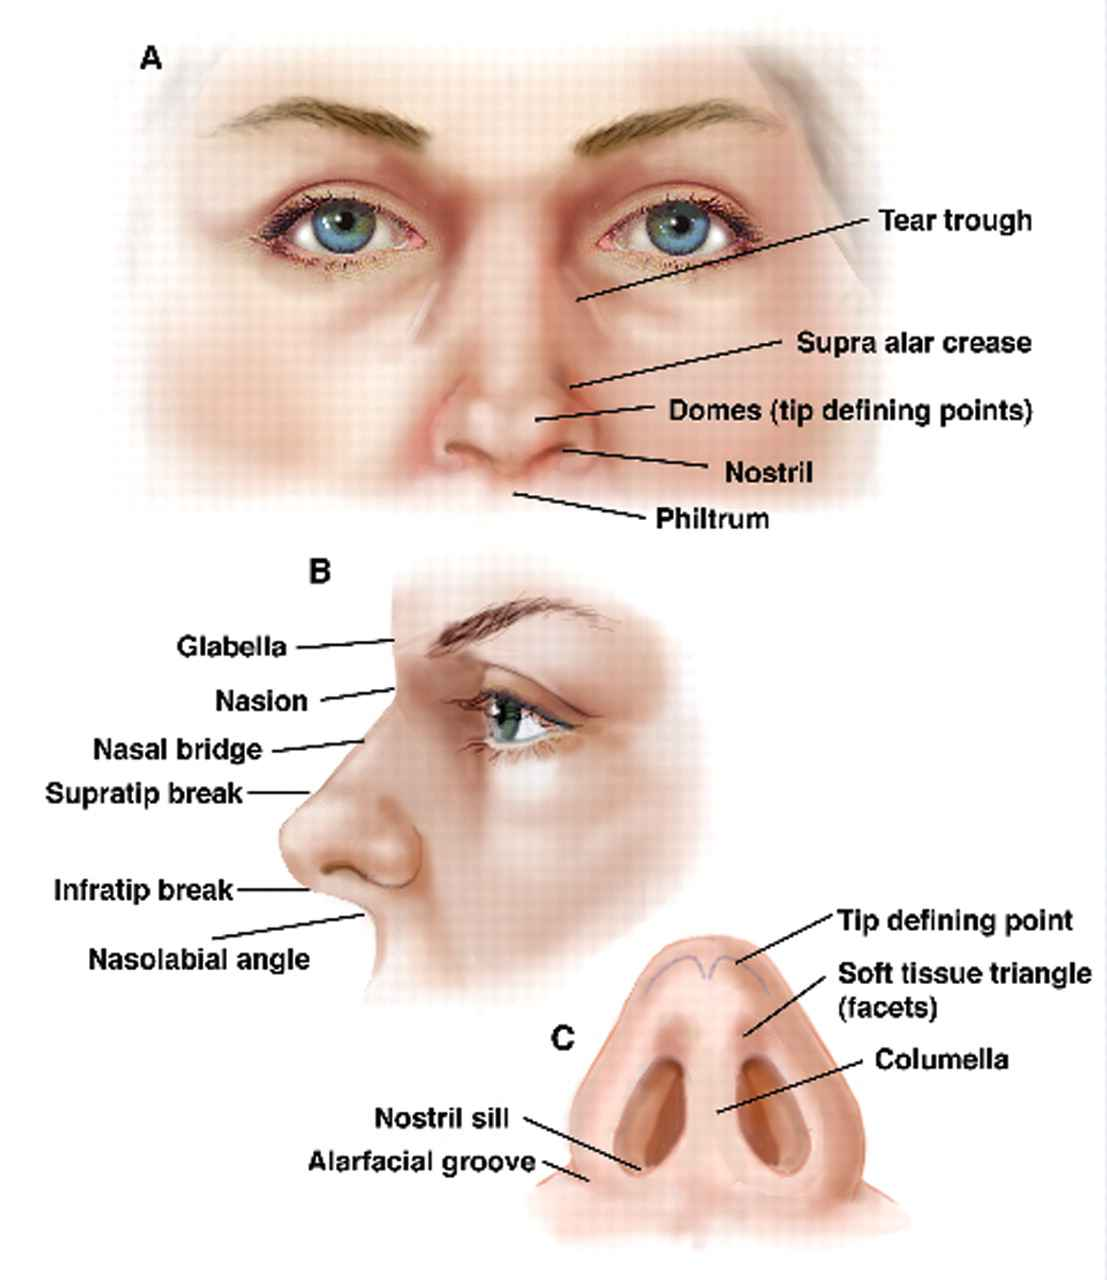 Human Anatomy Nose Diagram - coordstudenti